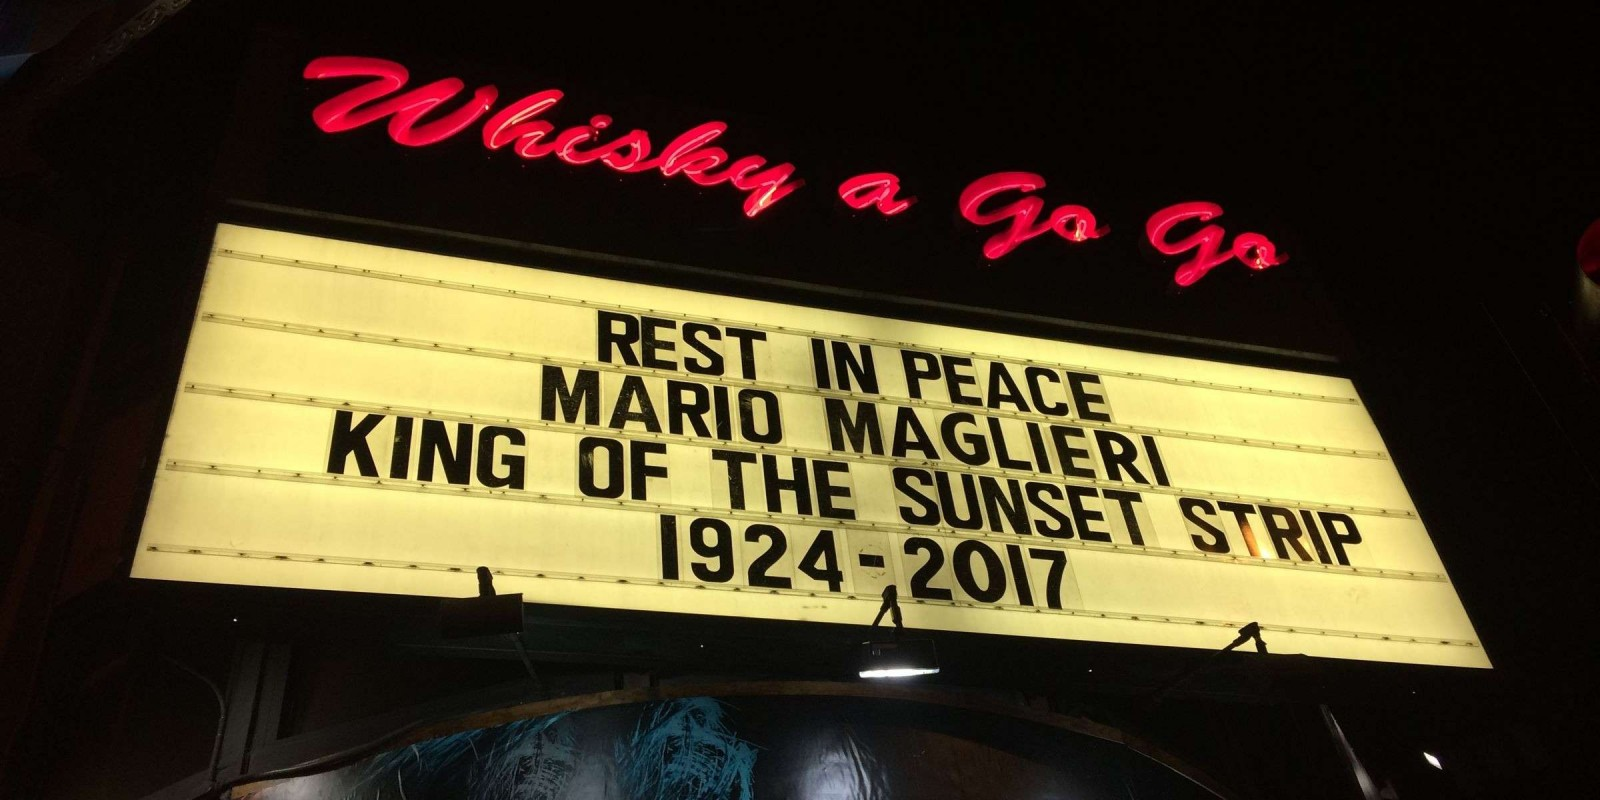 photos of the Whisky A Go Go venue marquee paying homeage to recently deceased owner Mario Maglieri